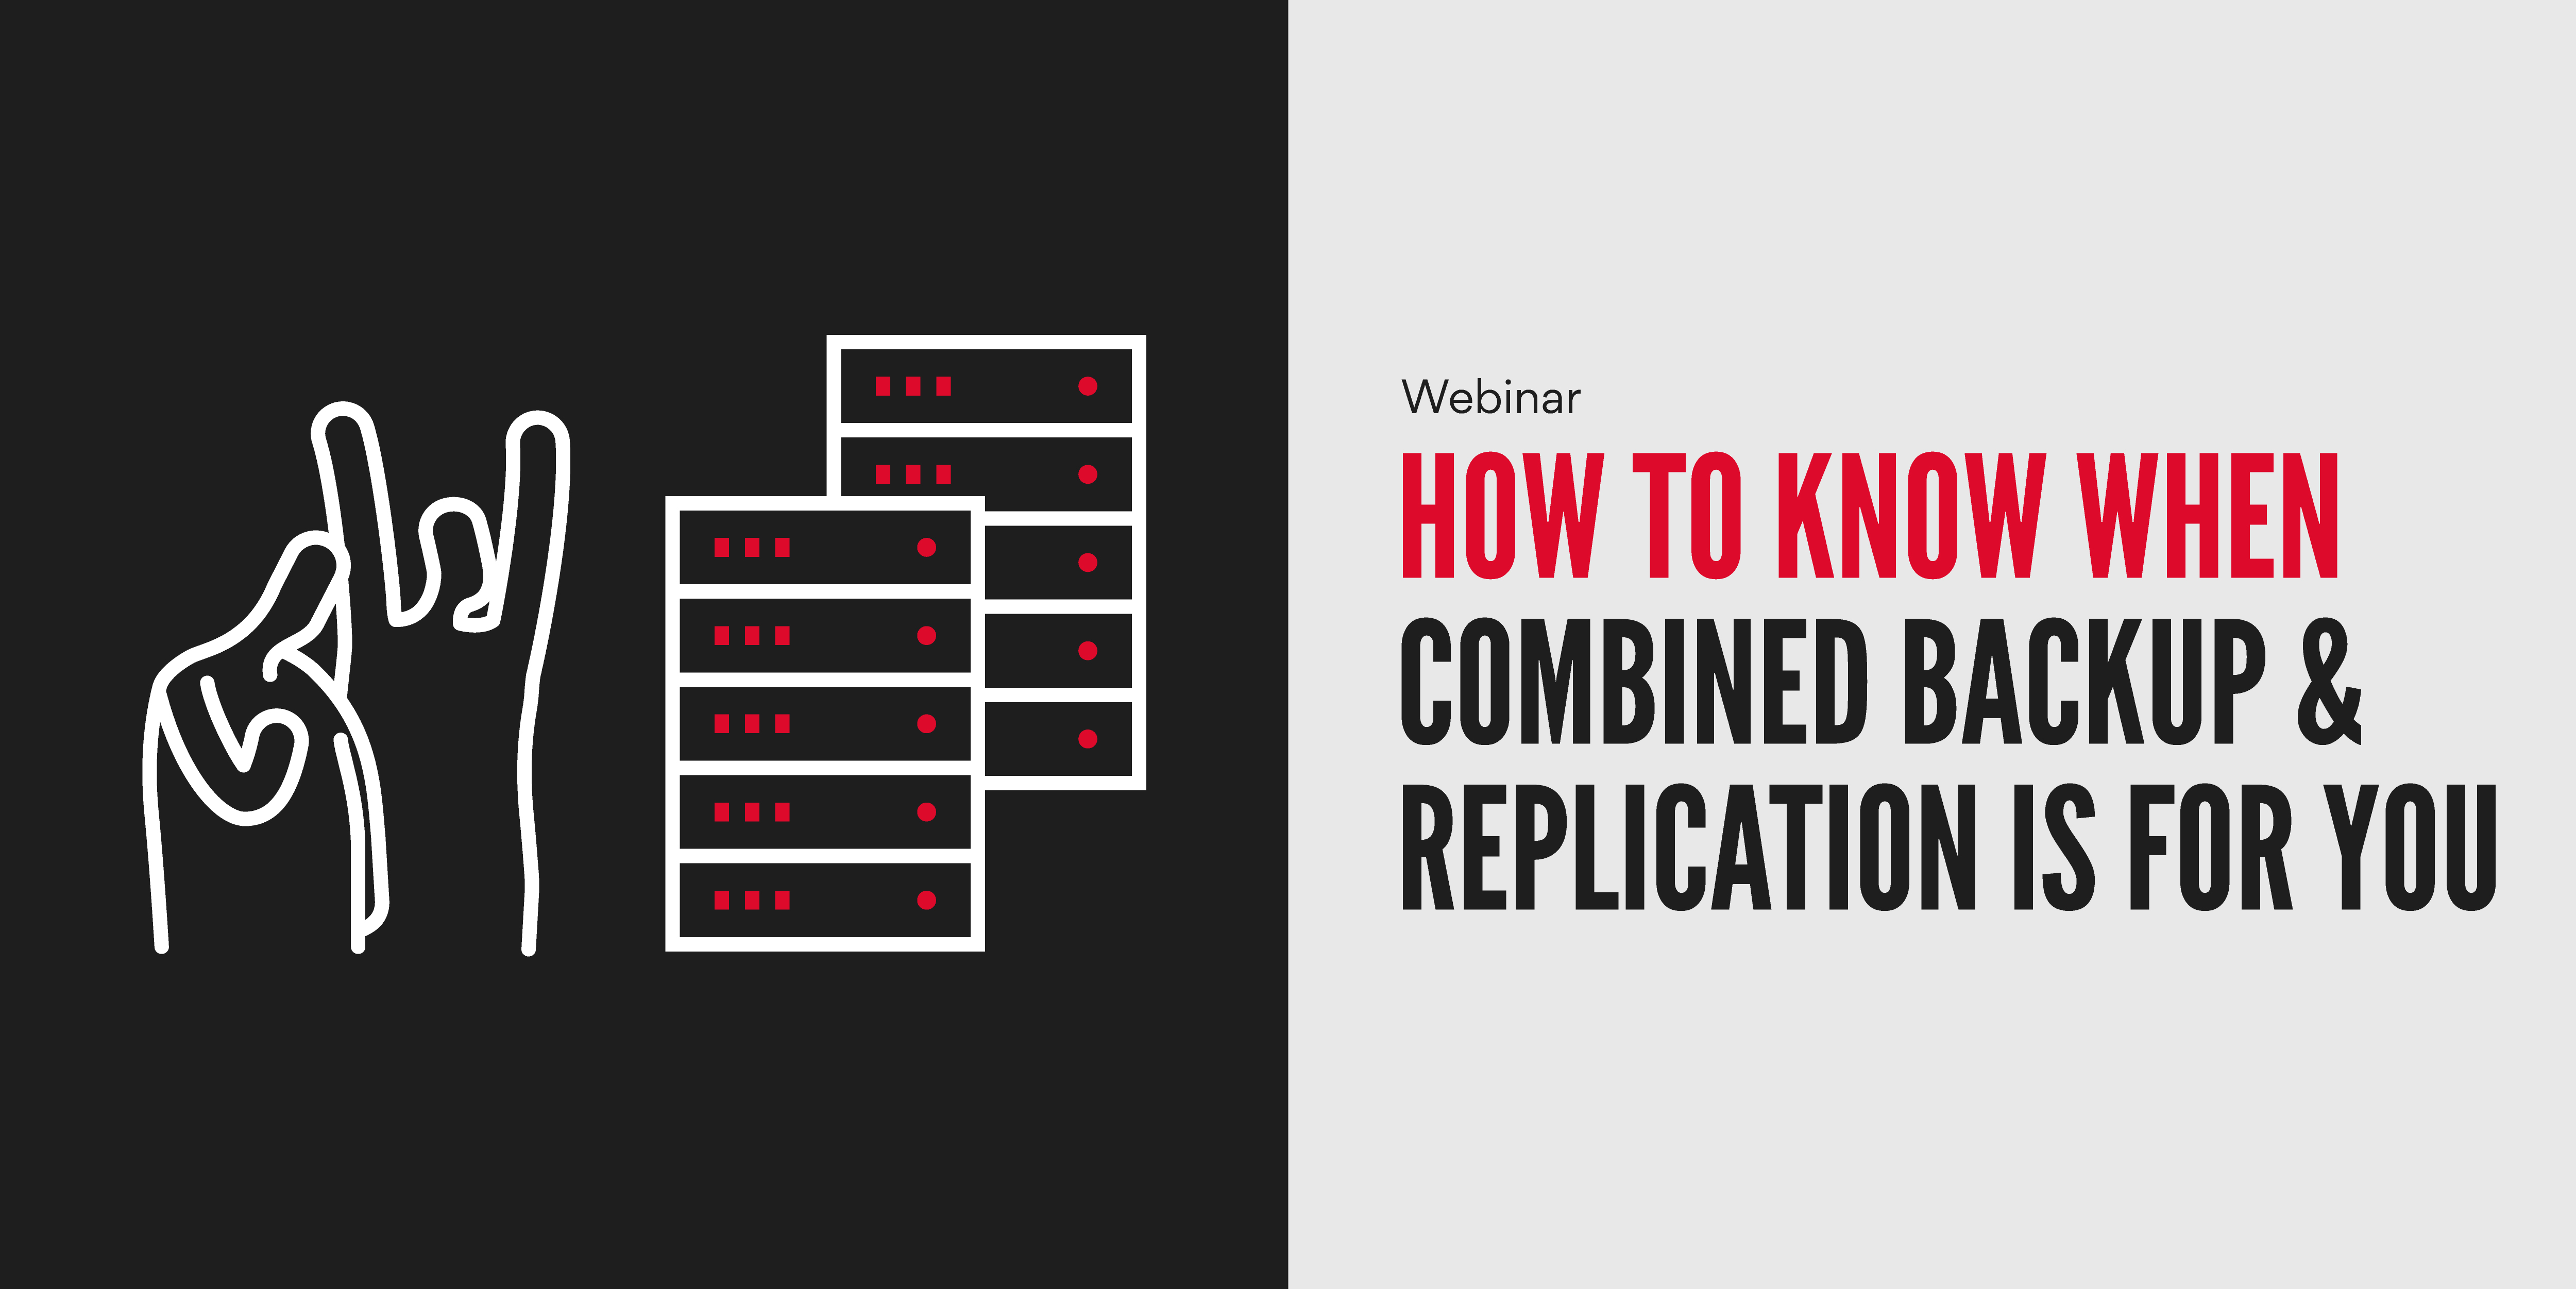 How to know when combined Backup & Replication is for you